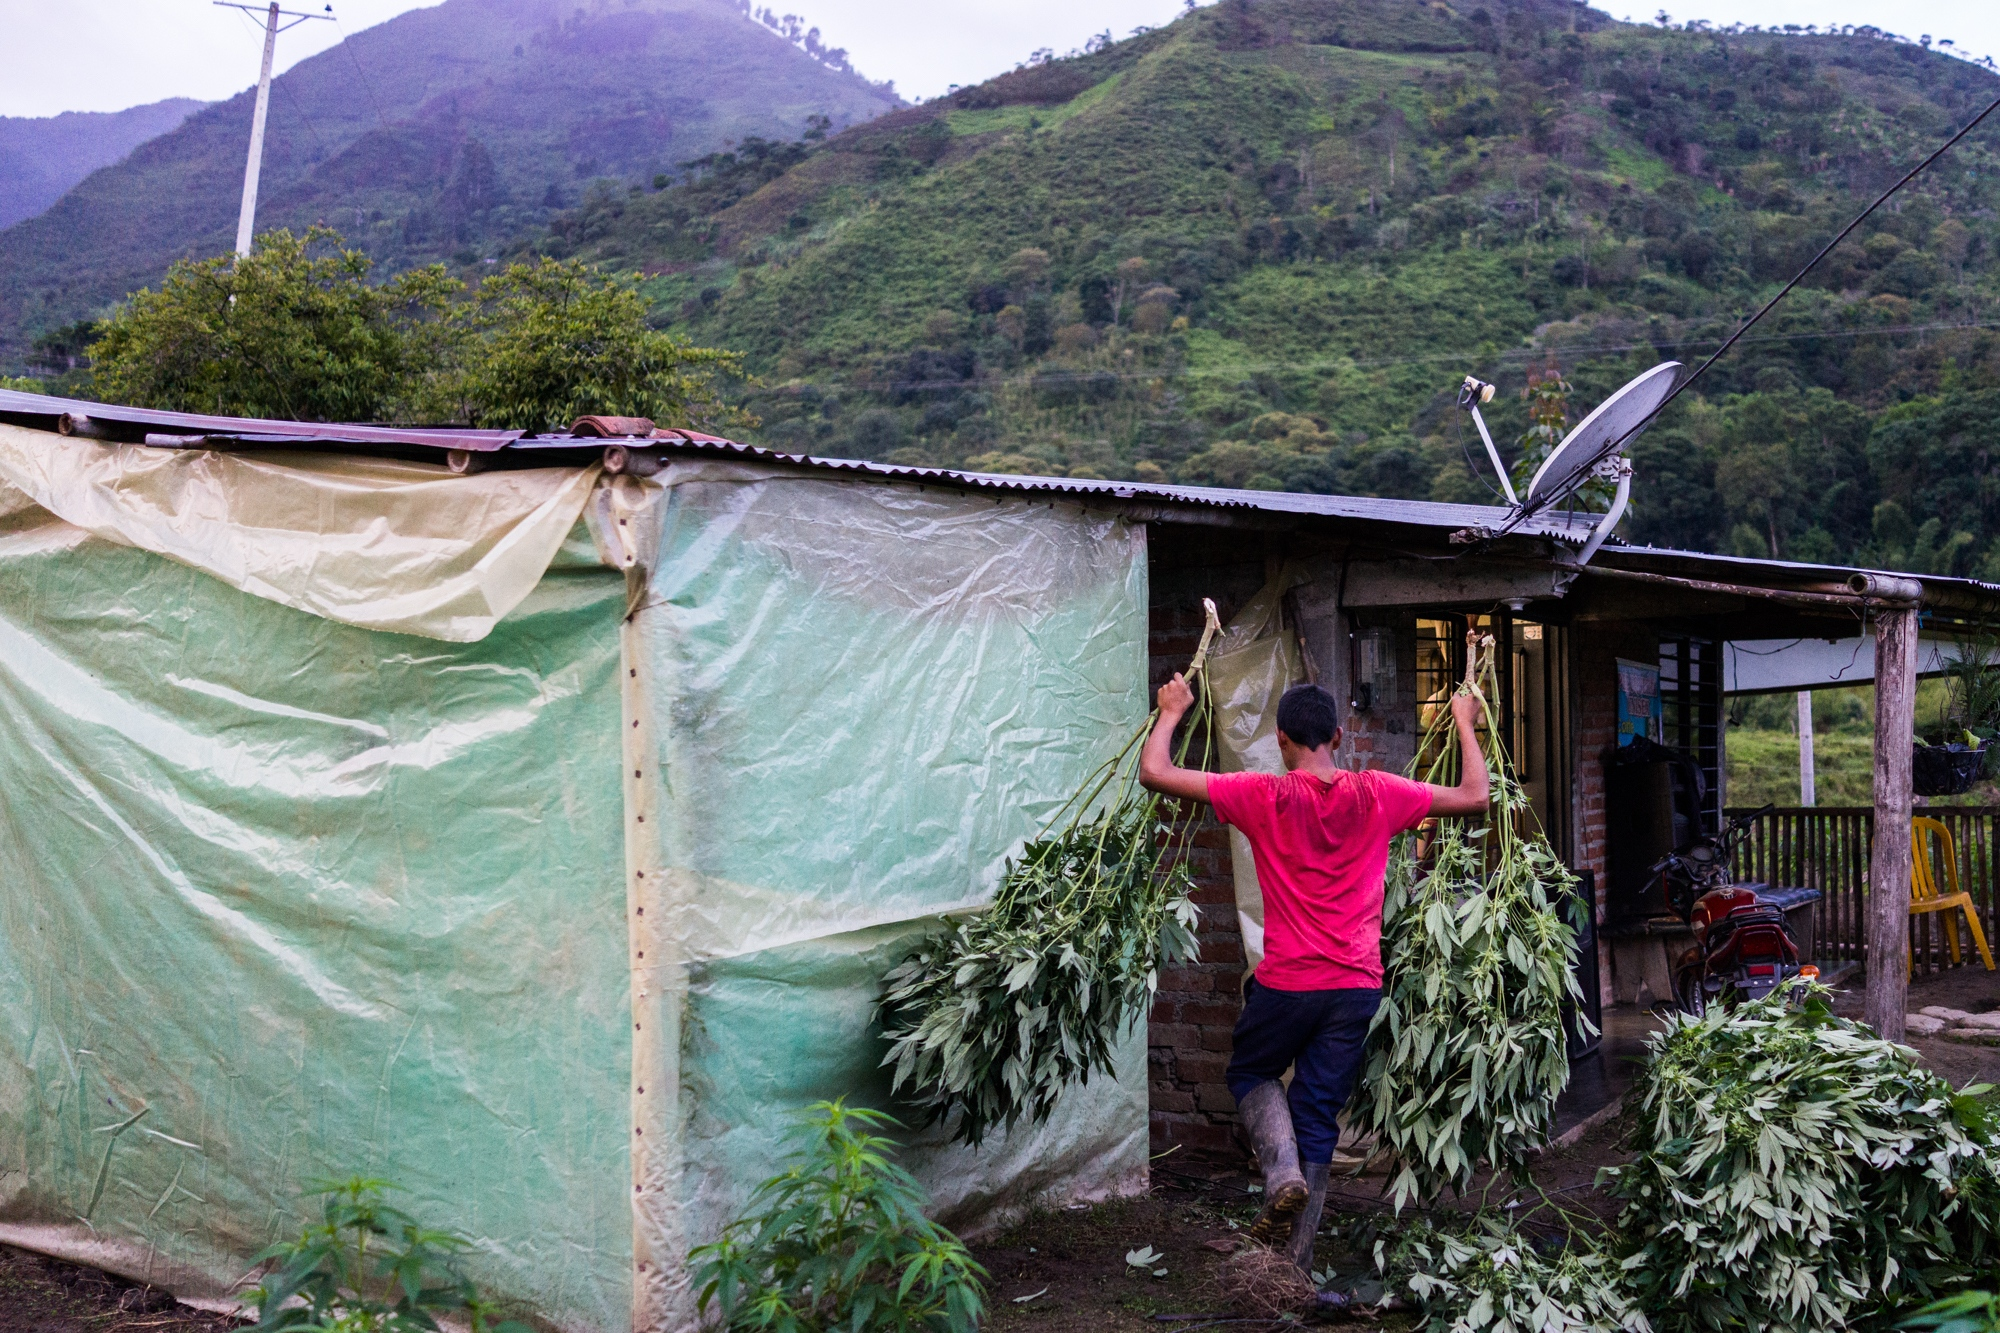 Carlos, 13 years old helps his brother Roberio carry plants to the home made oven to dry the marijuana branches.